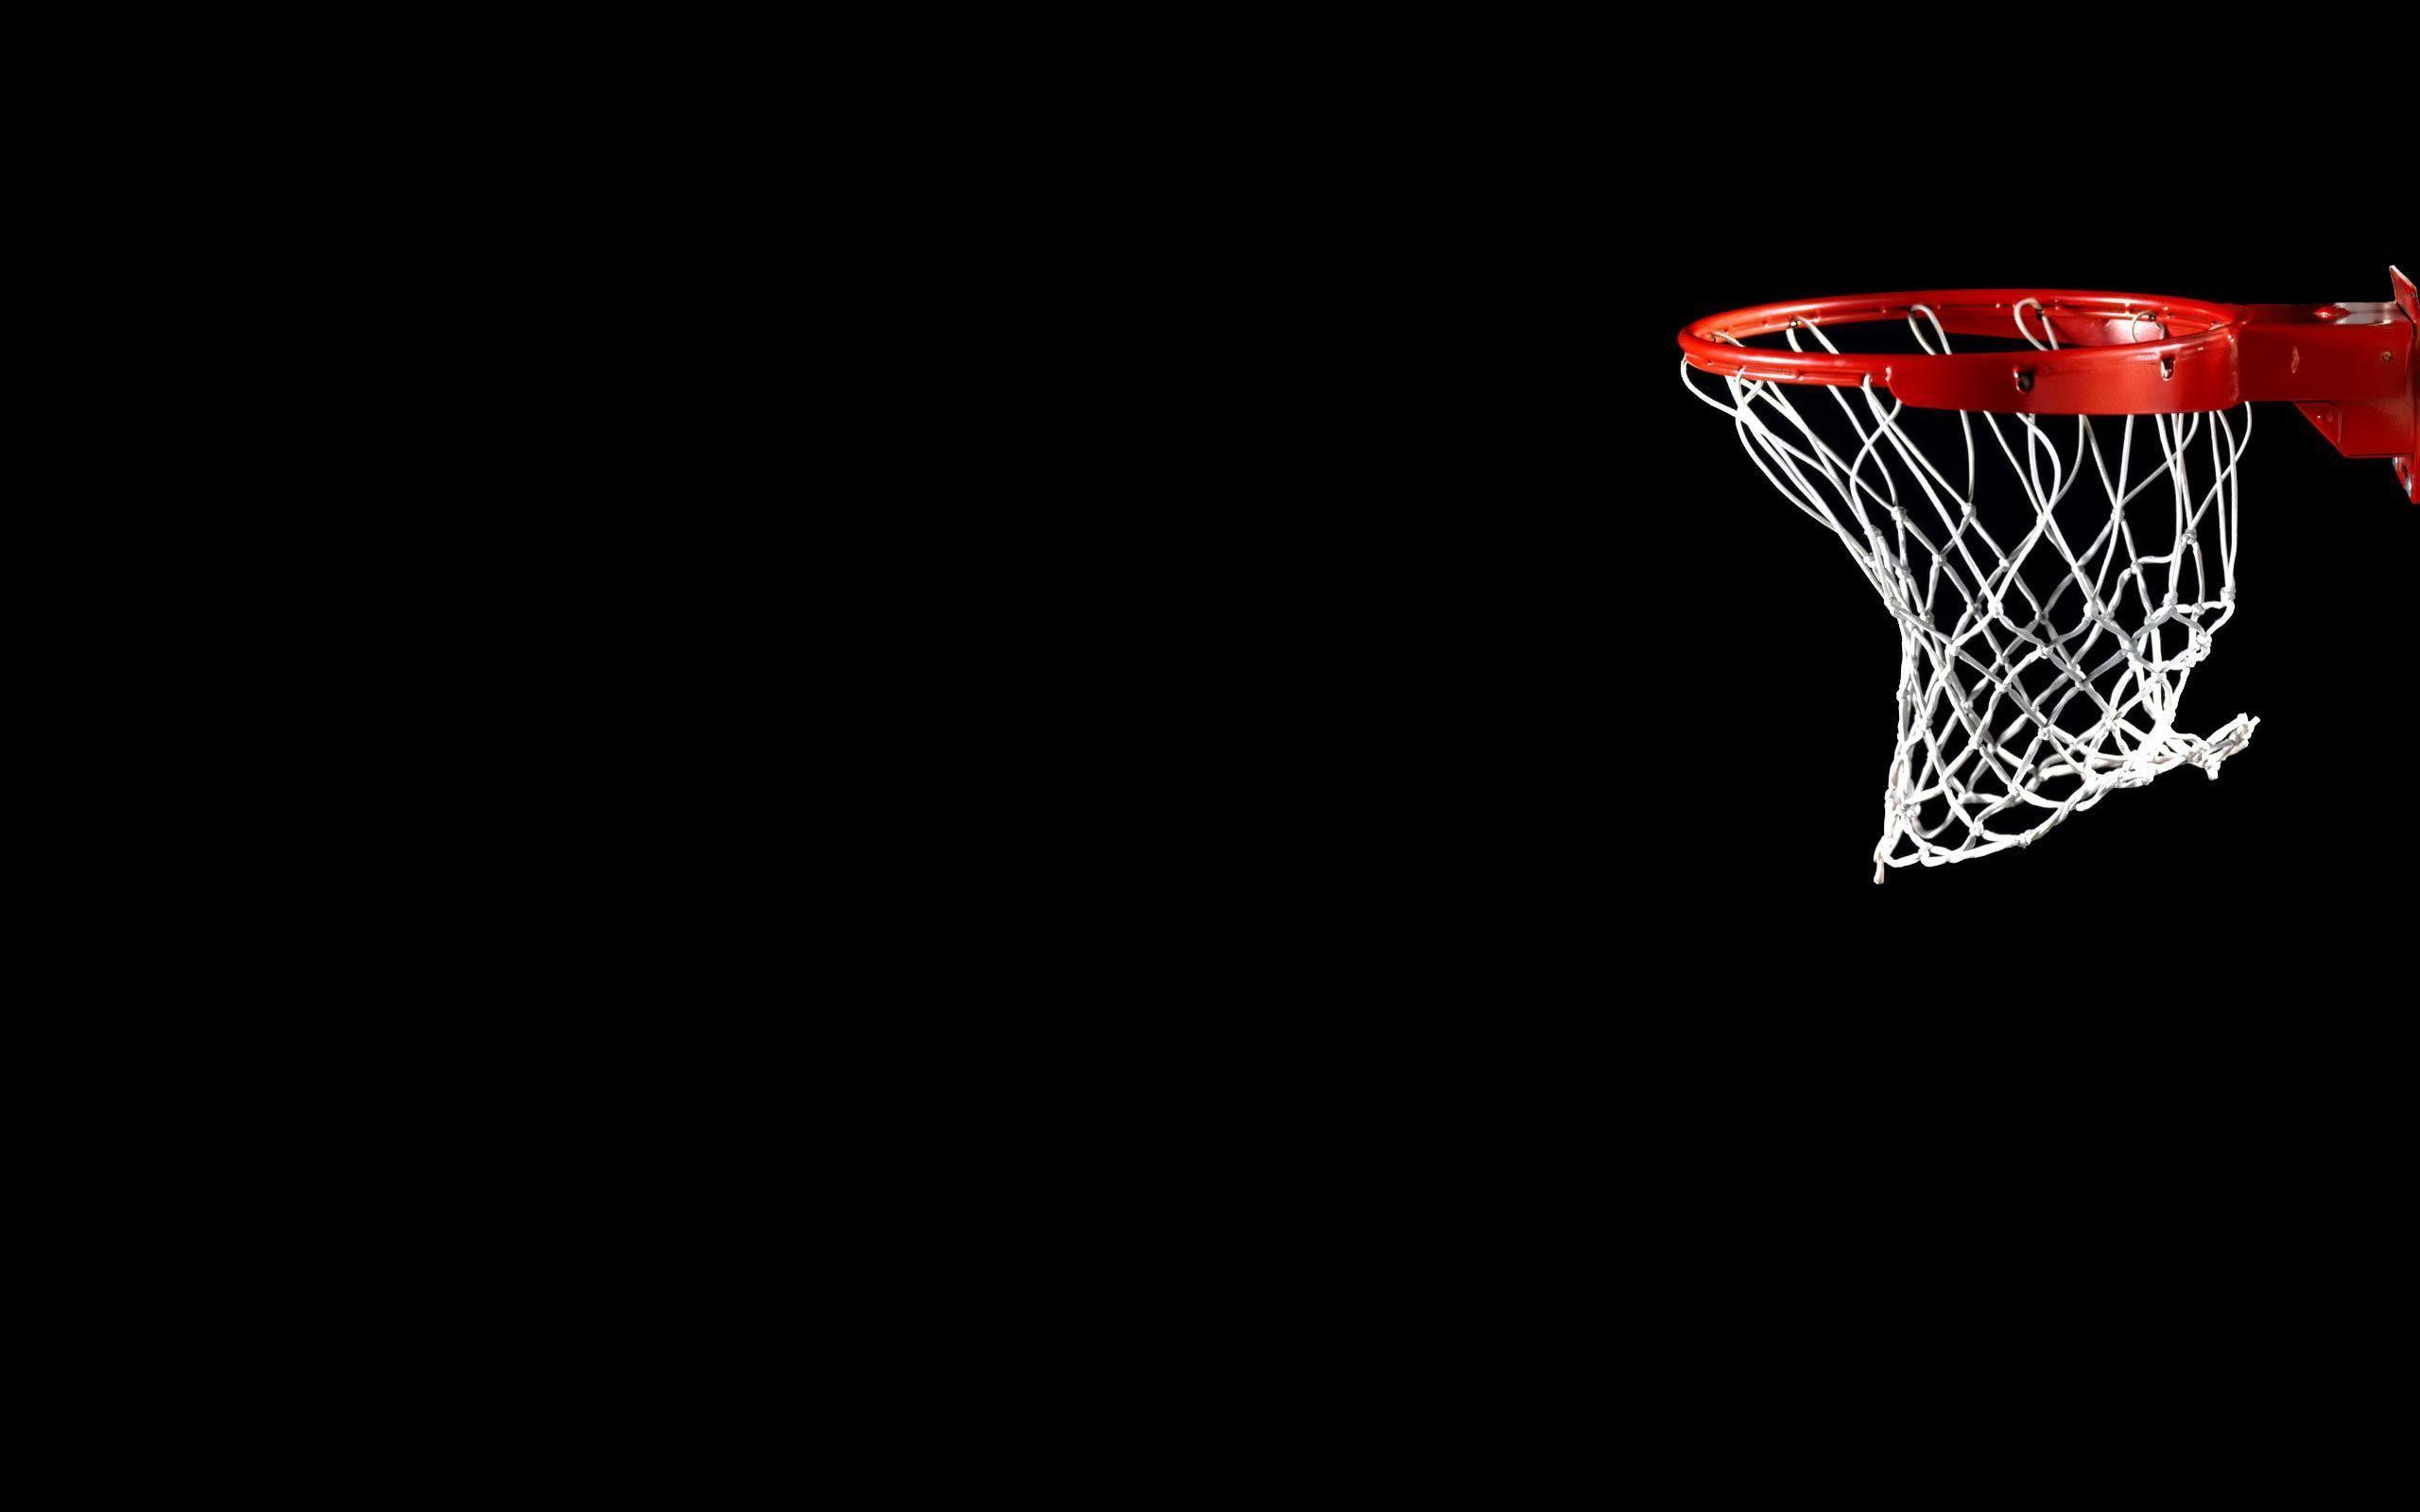 Sport Wallpaper Basketball: HD Basketball Wallpapers